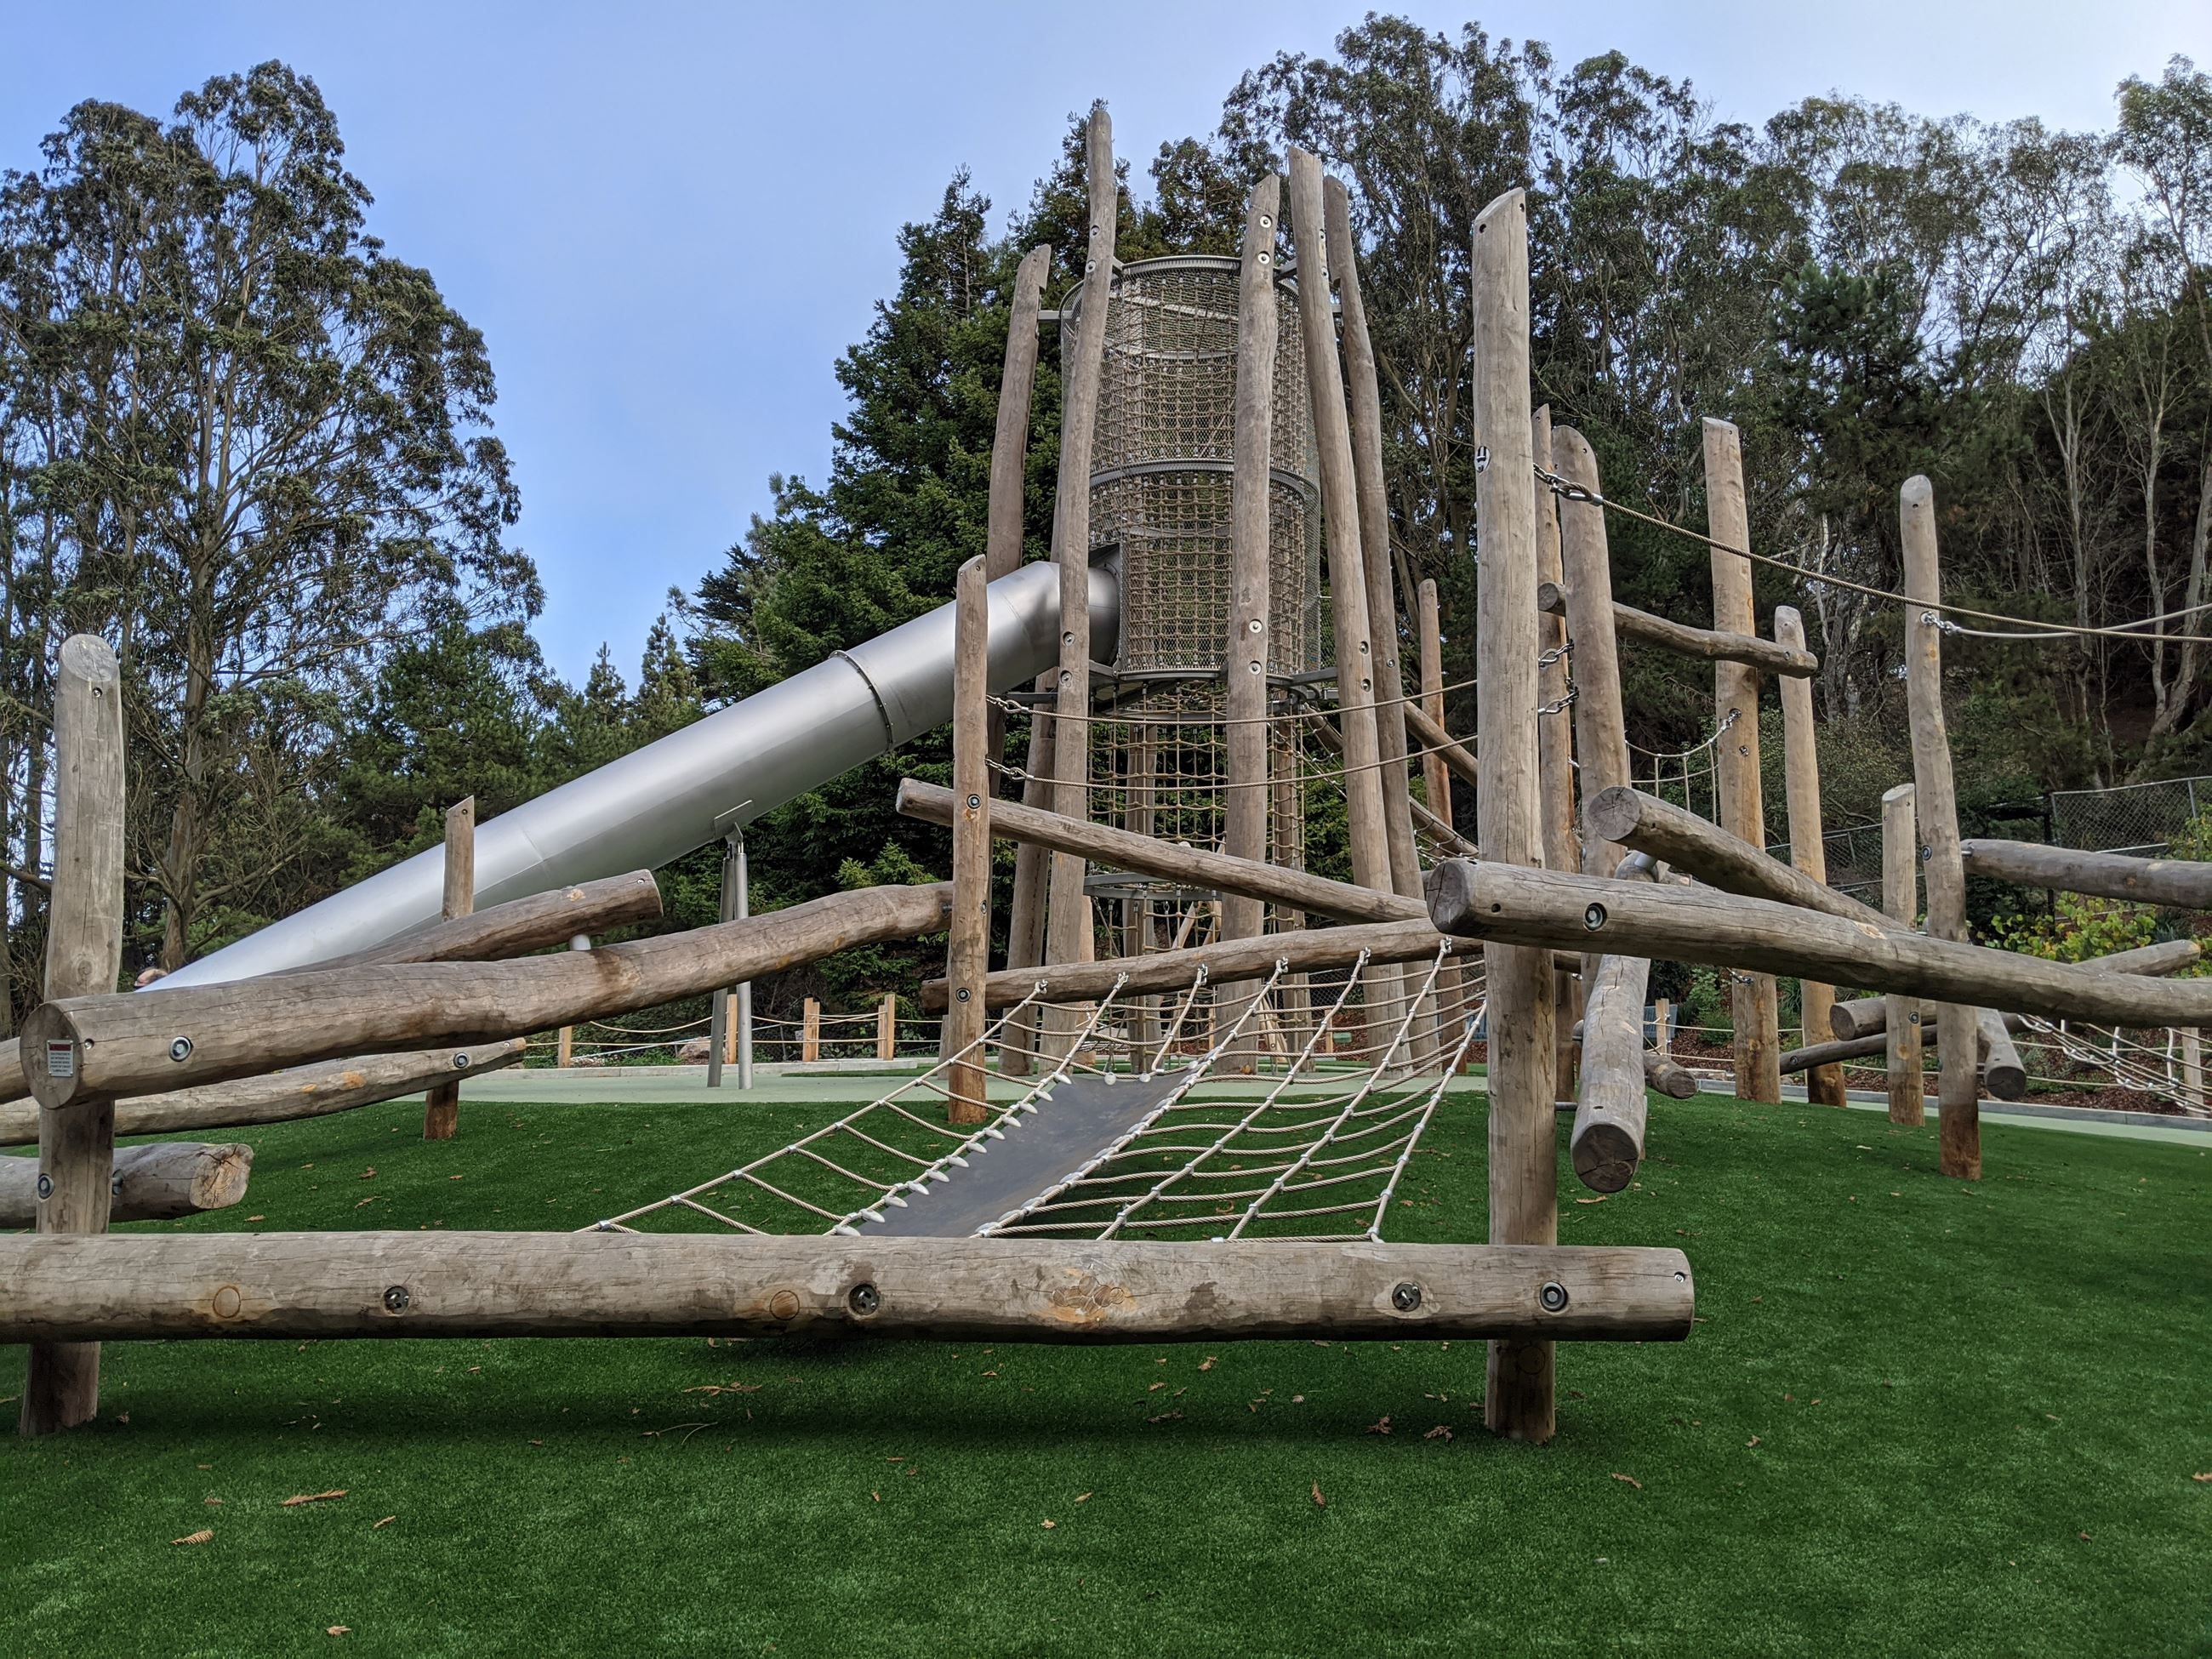 Climbing structure made of logs and rope net with a large tower and slide over green safety surface